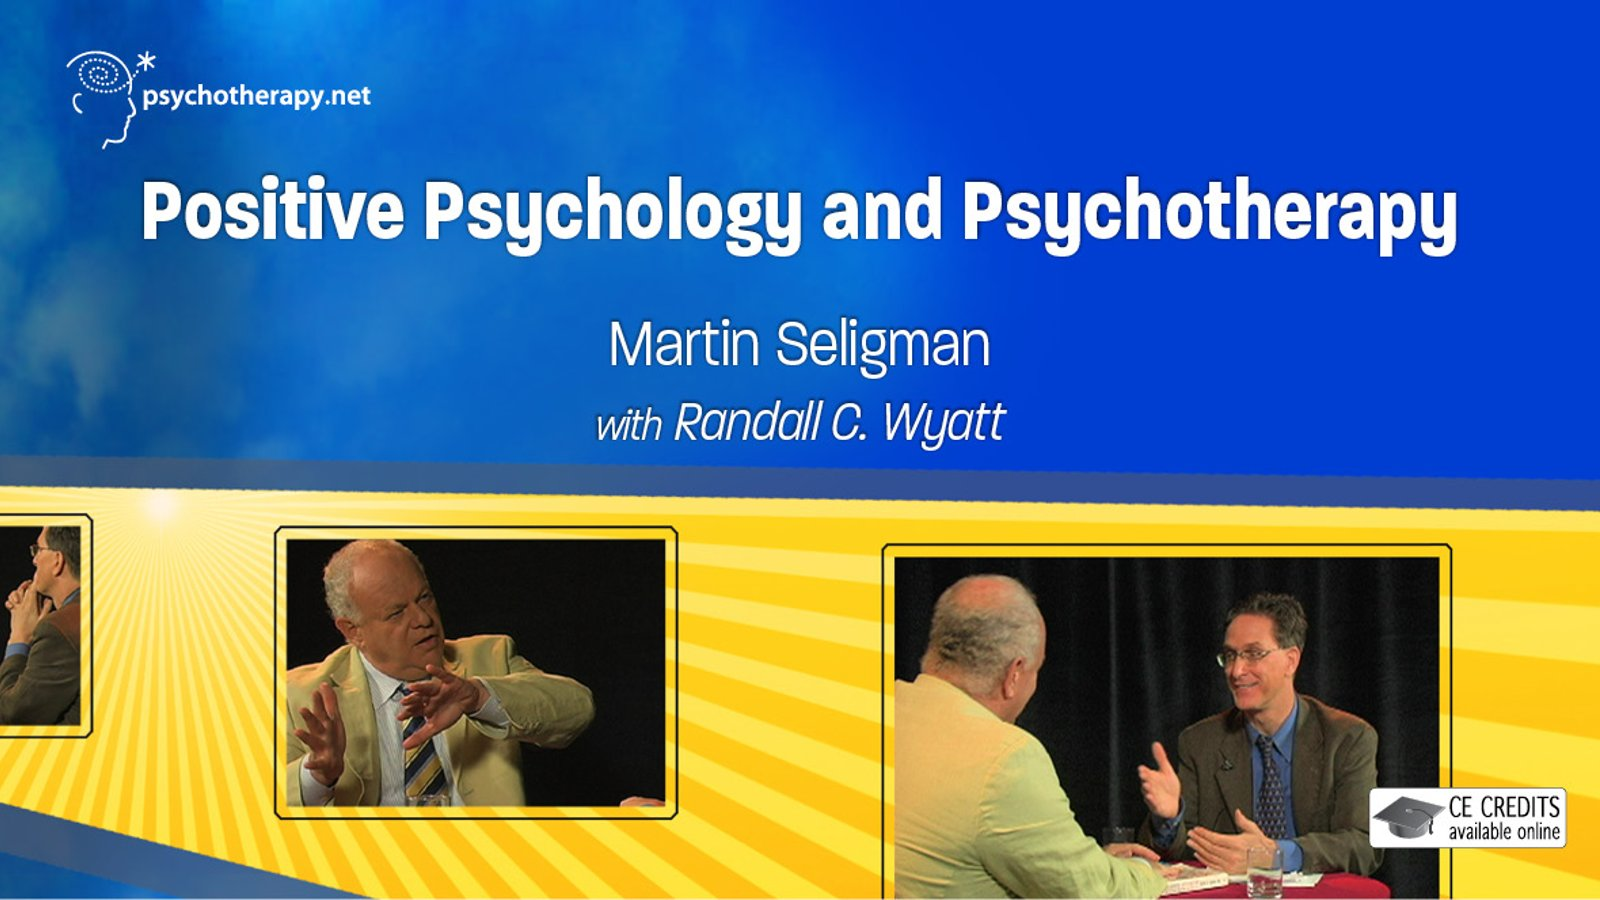 Positive Psychology and Psychotherapy - With Randall C. Wyatt